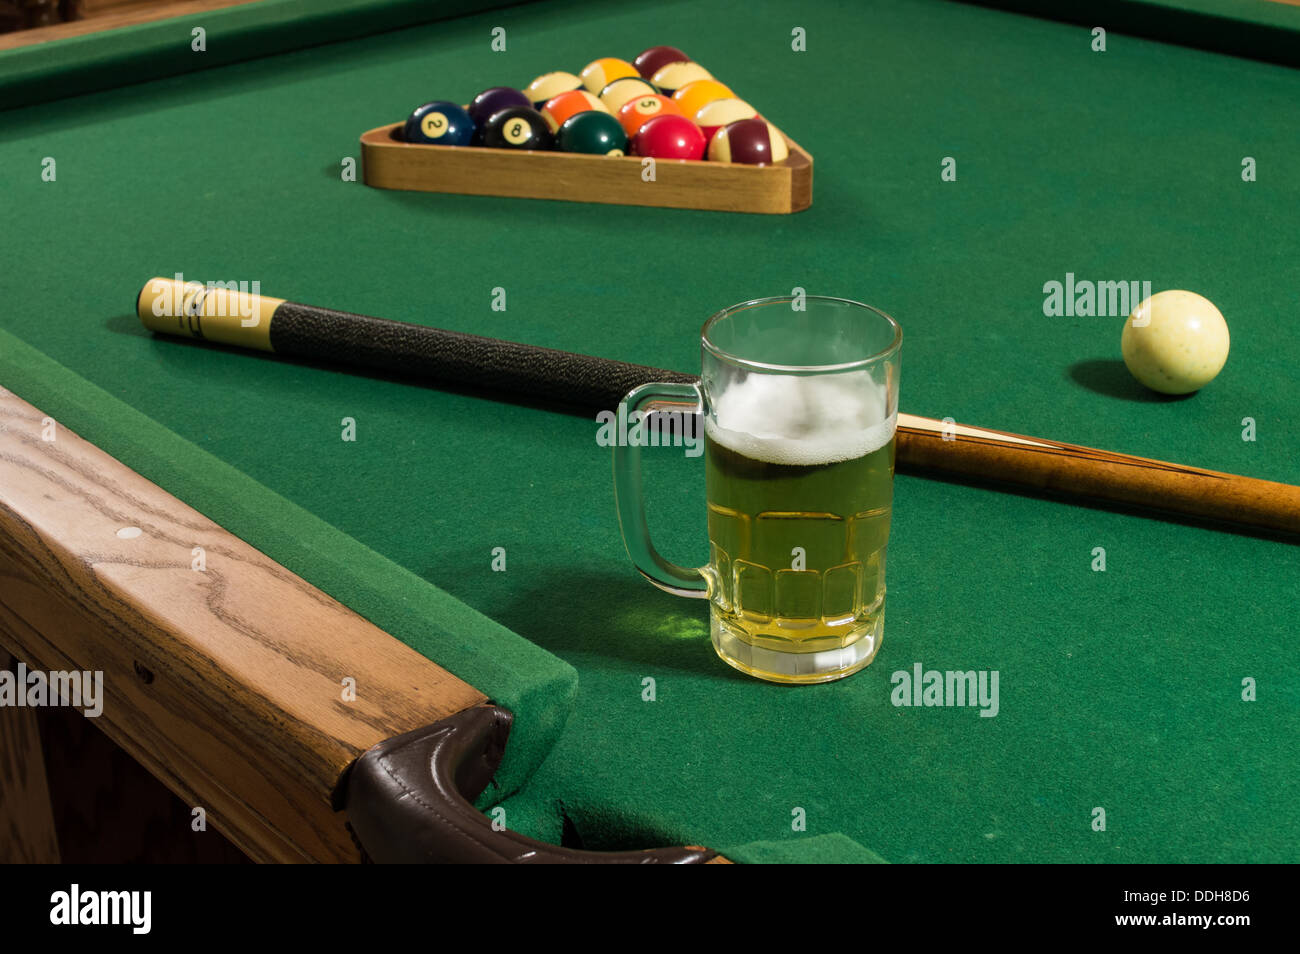 A Cold Mug Of Beer With Foam On A Pool Table With Green Felt, A Pool Stick  And Rack Of 15 Balls Including 8 Ball And 9 Ball.